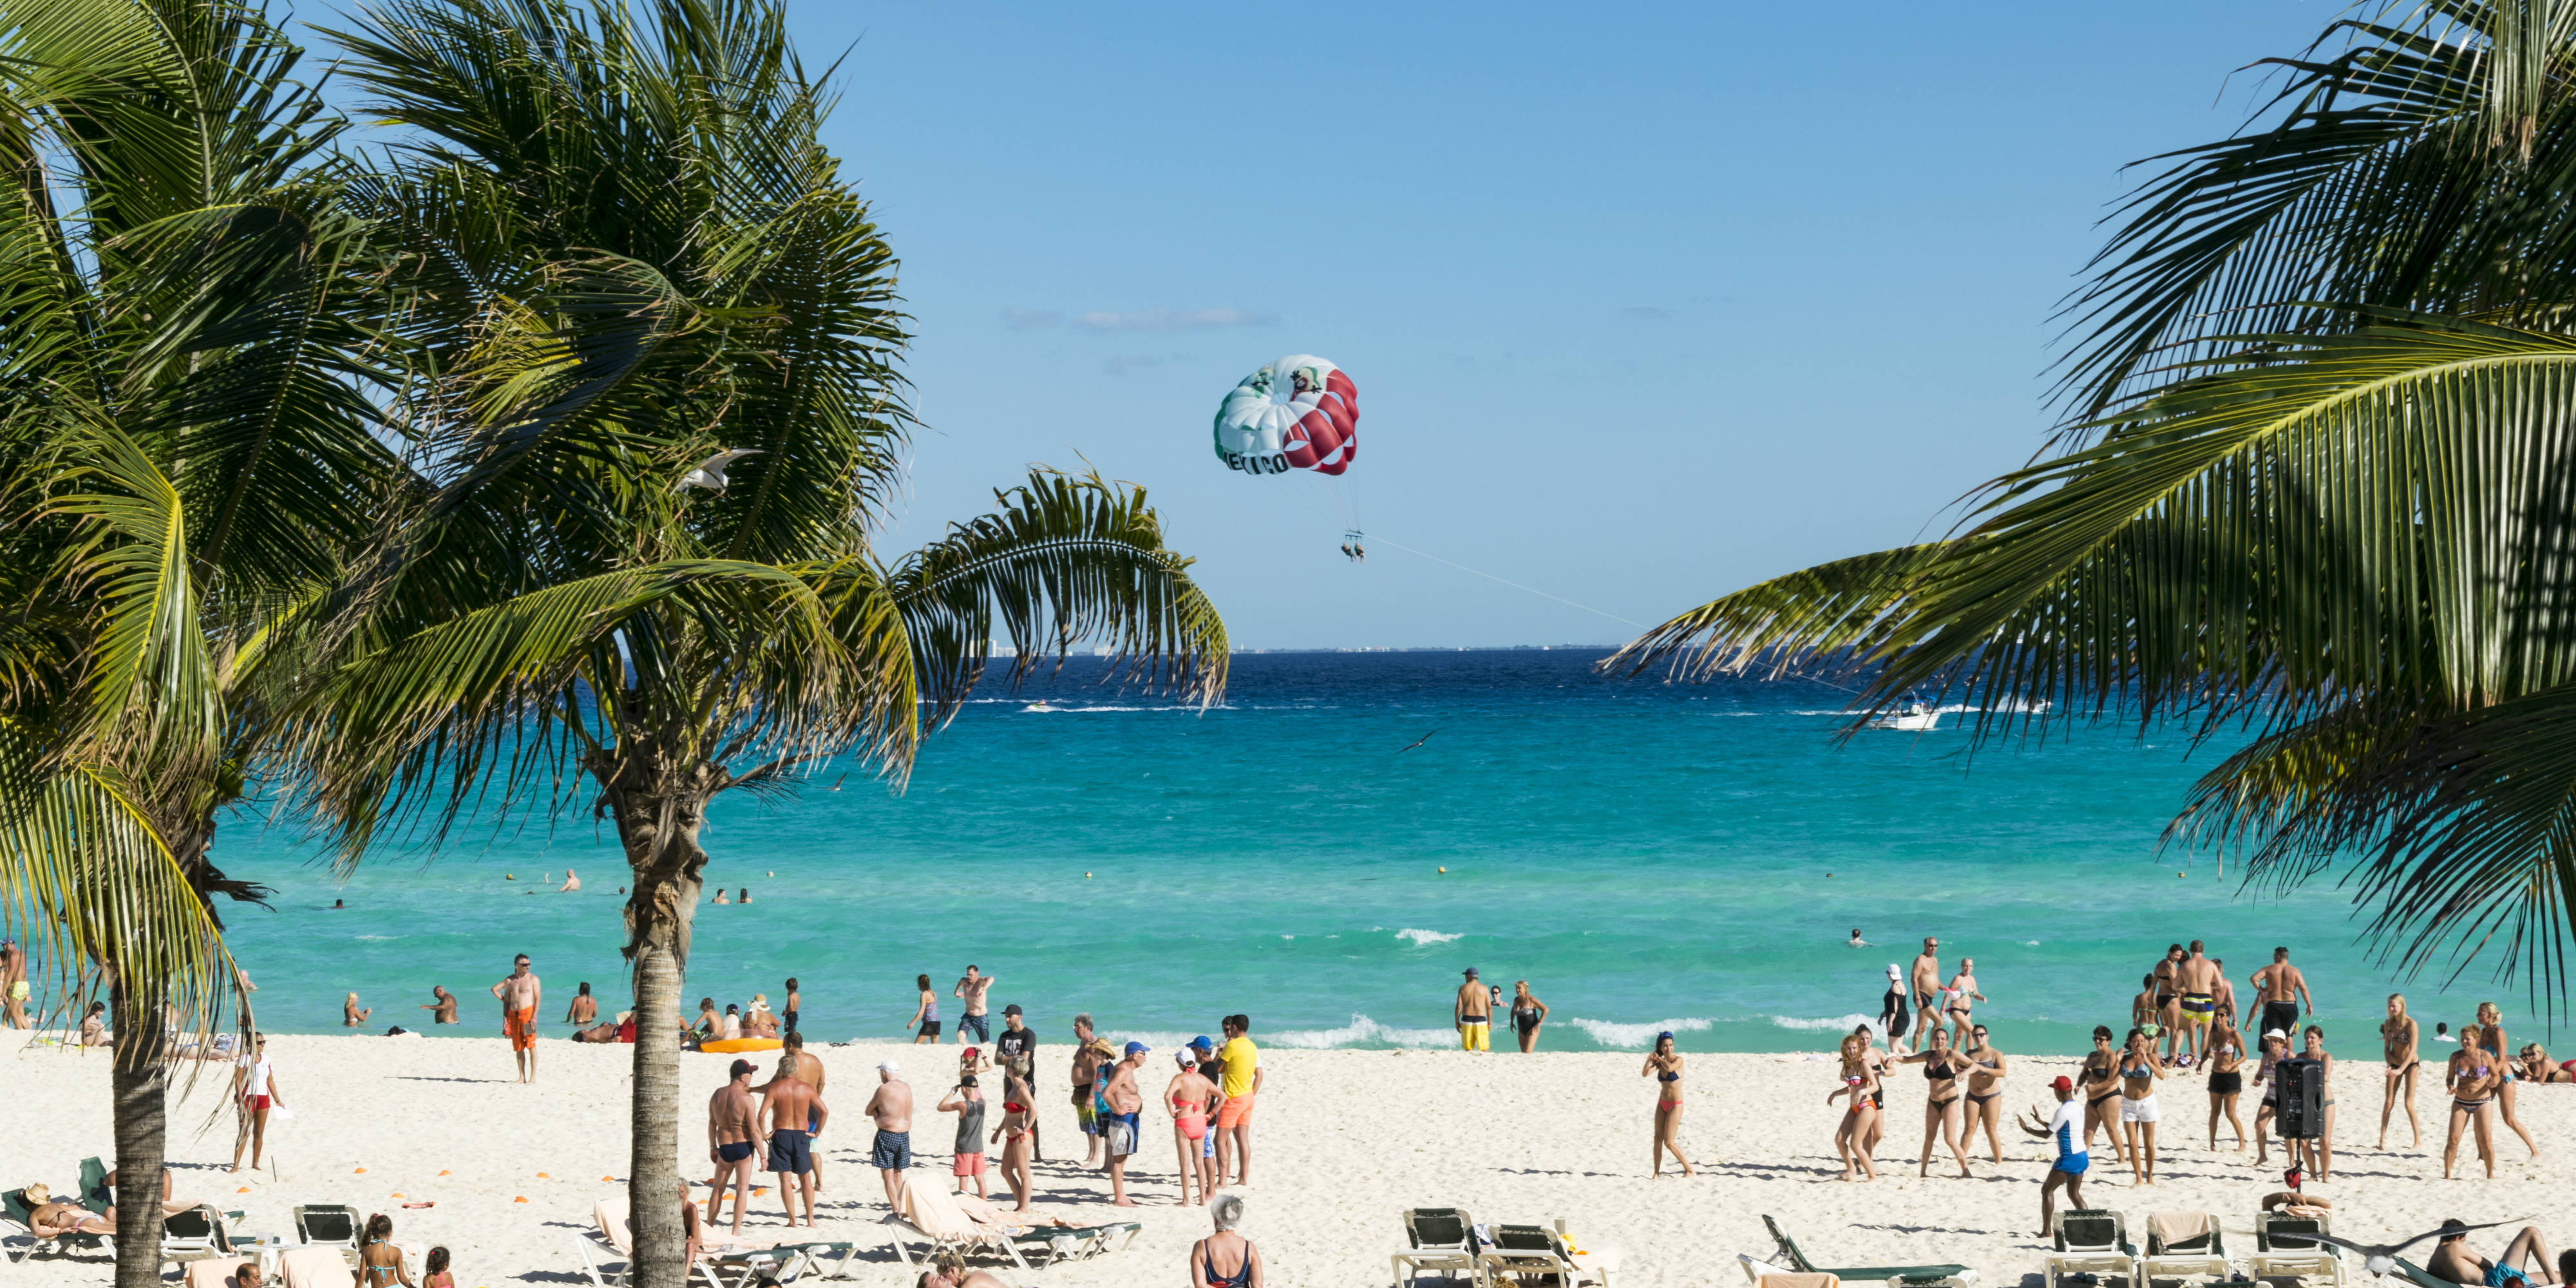 Visit the beaches of Cancun when you volunteer in Mexico